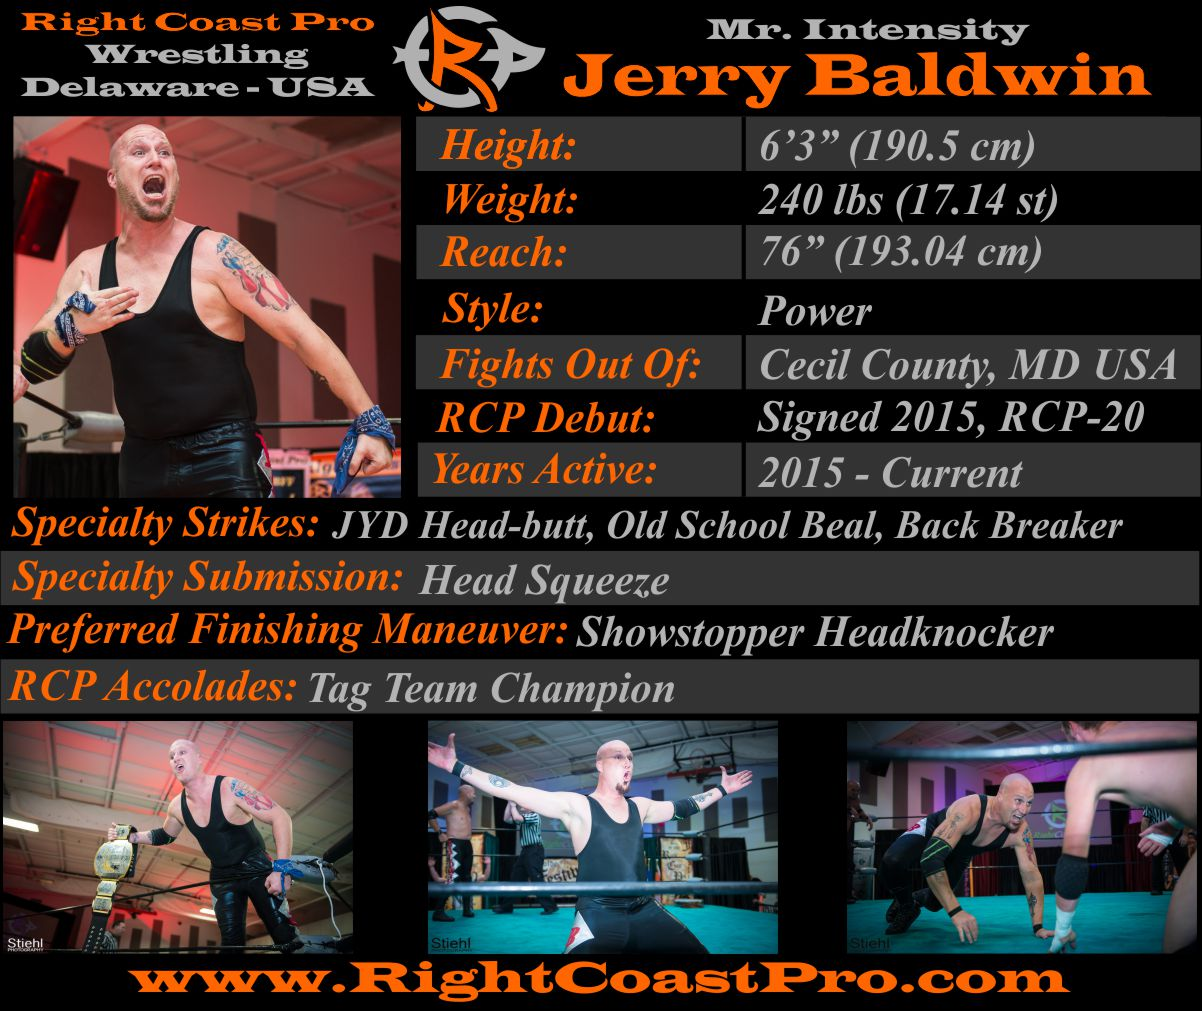 Jerry Baldwin AthleteProfile RightCoastPro Wrestling Delaware